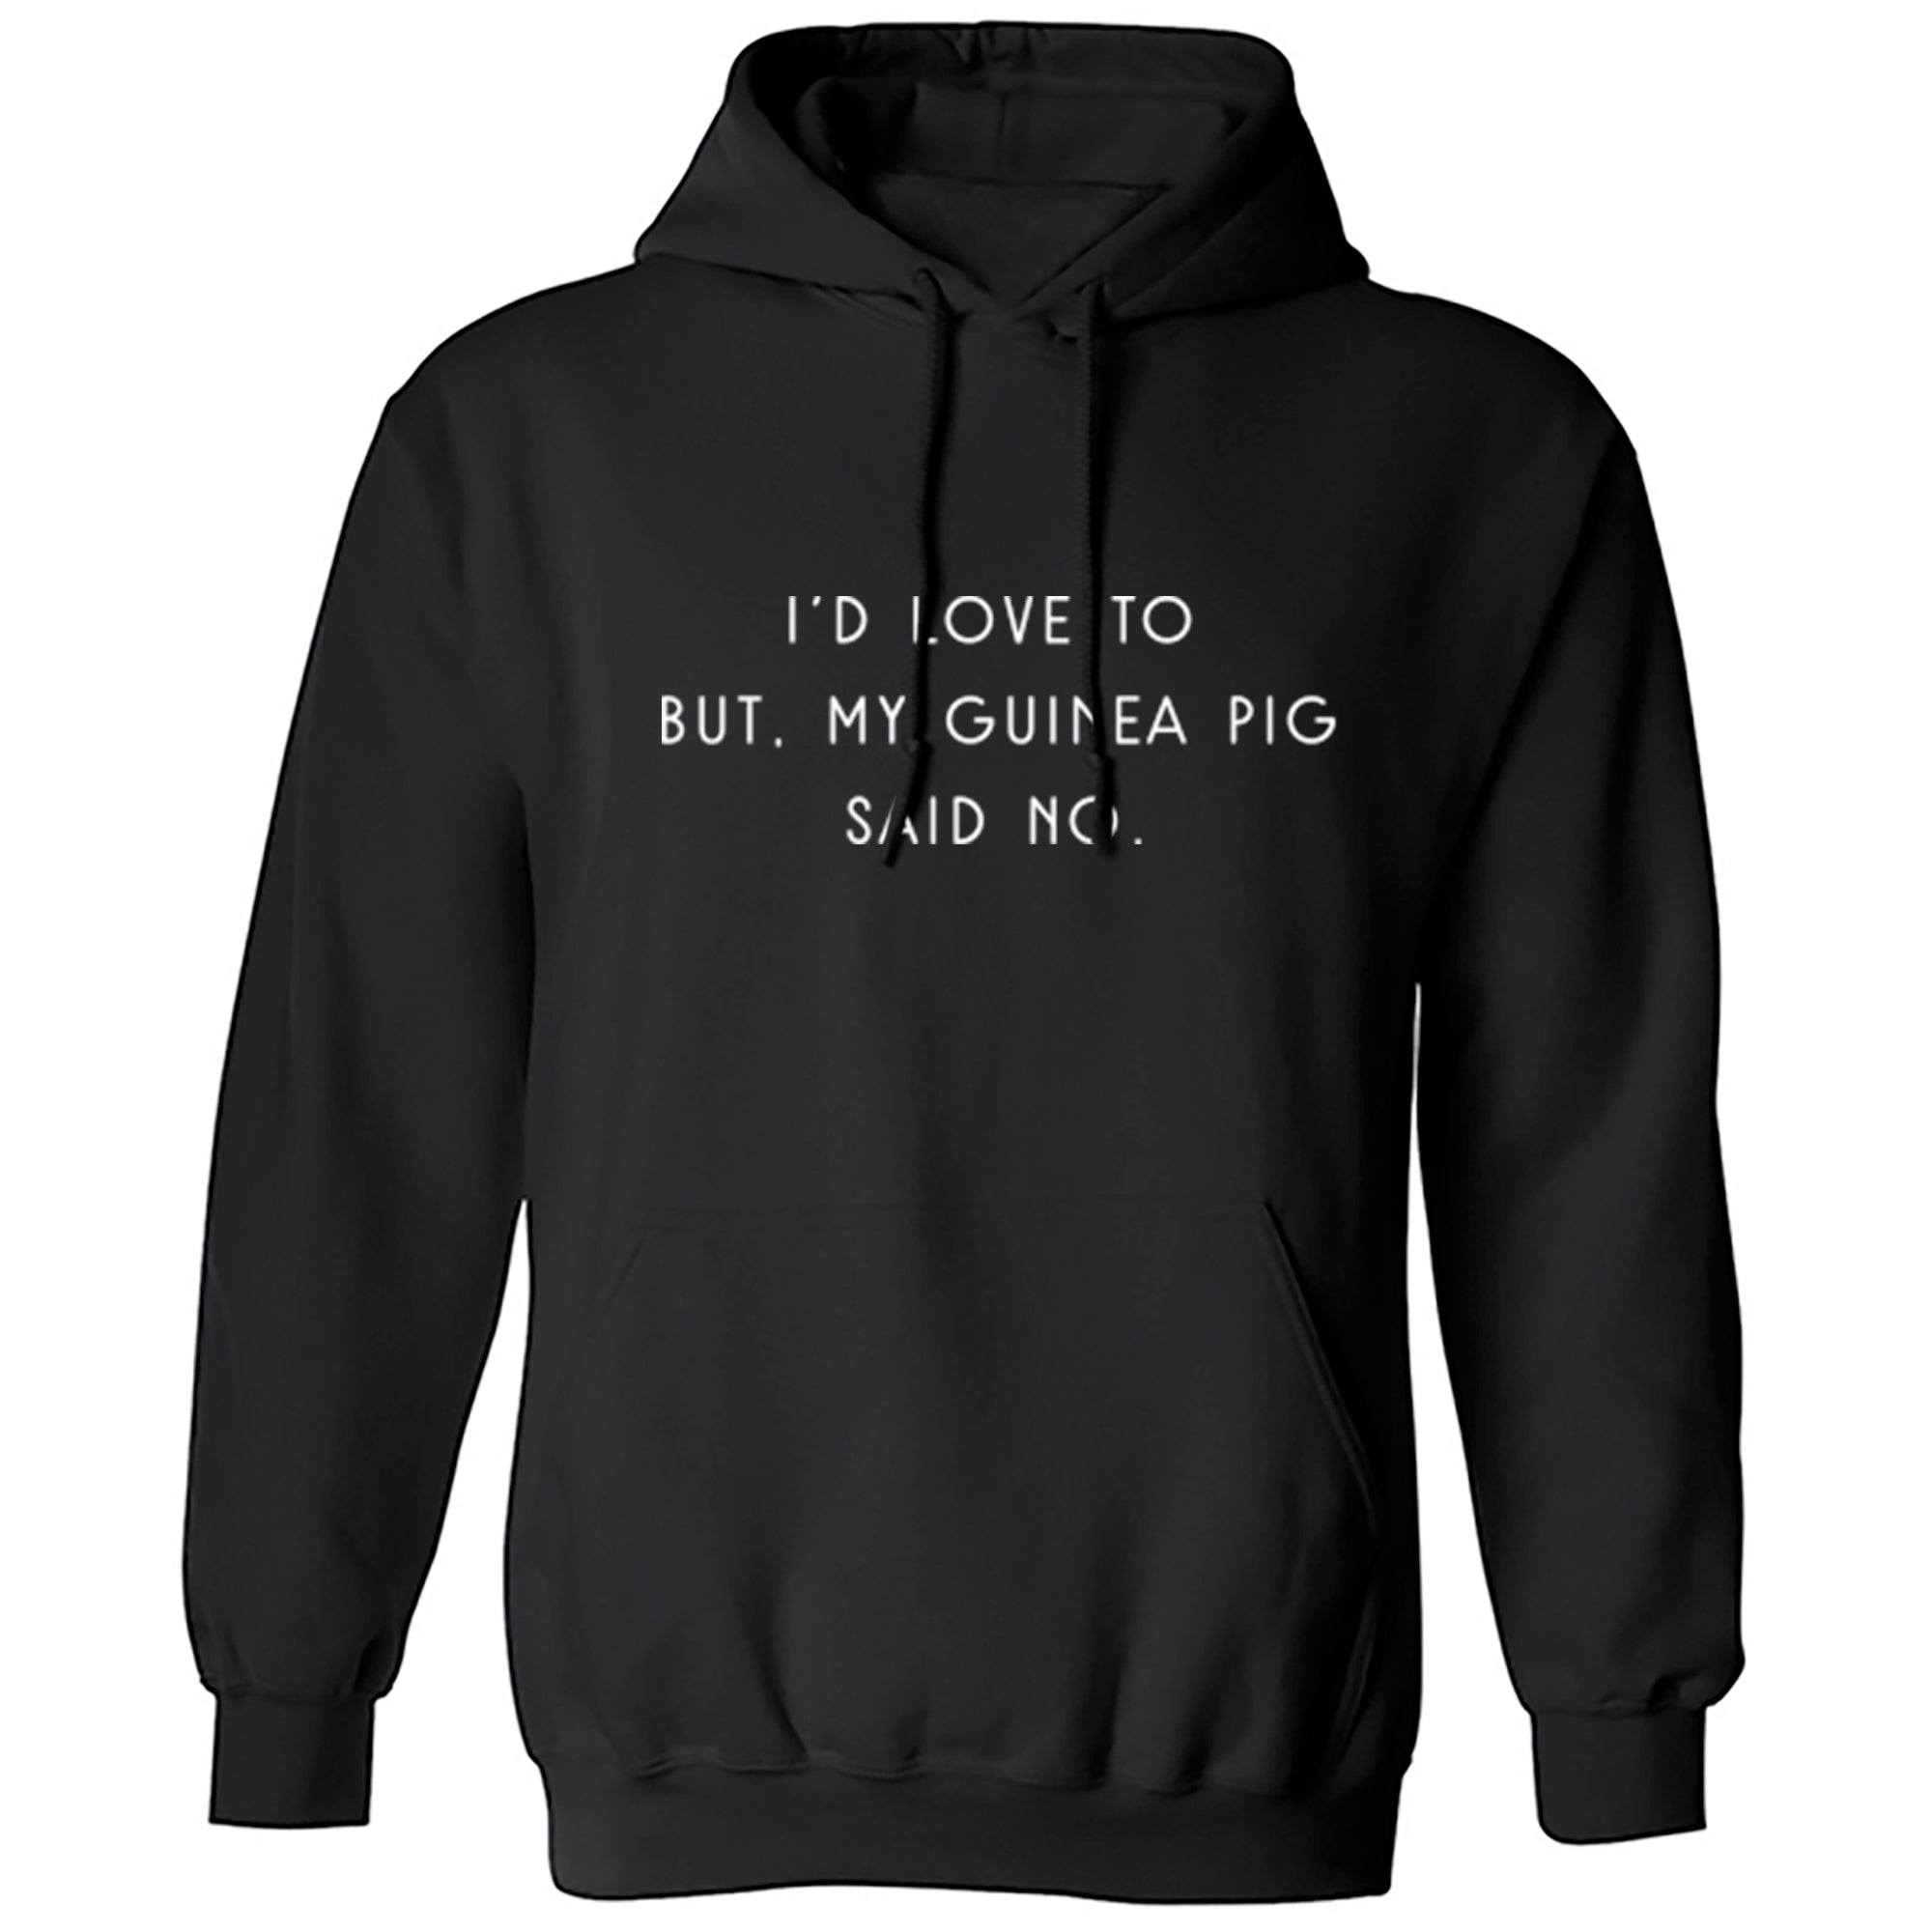 I'd Love To But, My Guinea Pig Said No Unisex Hoodie S1068 - Illustrated Identity Ltd.